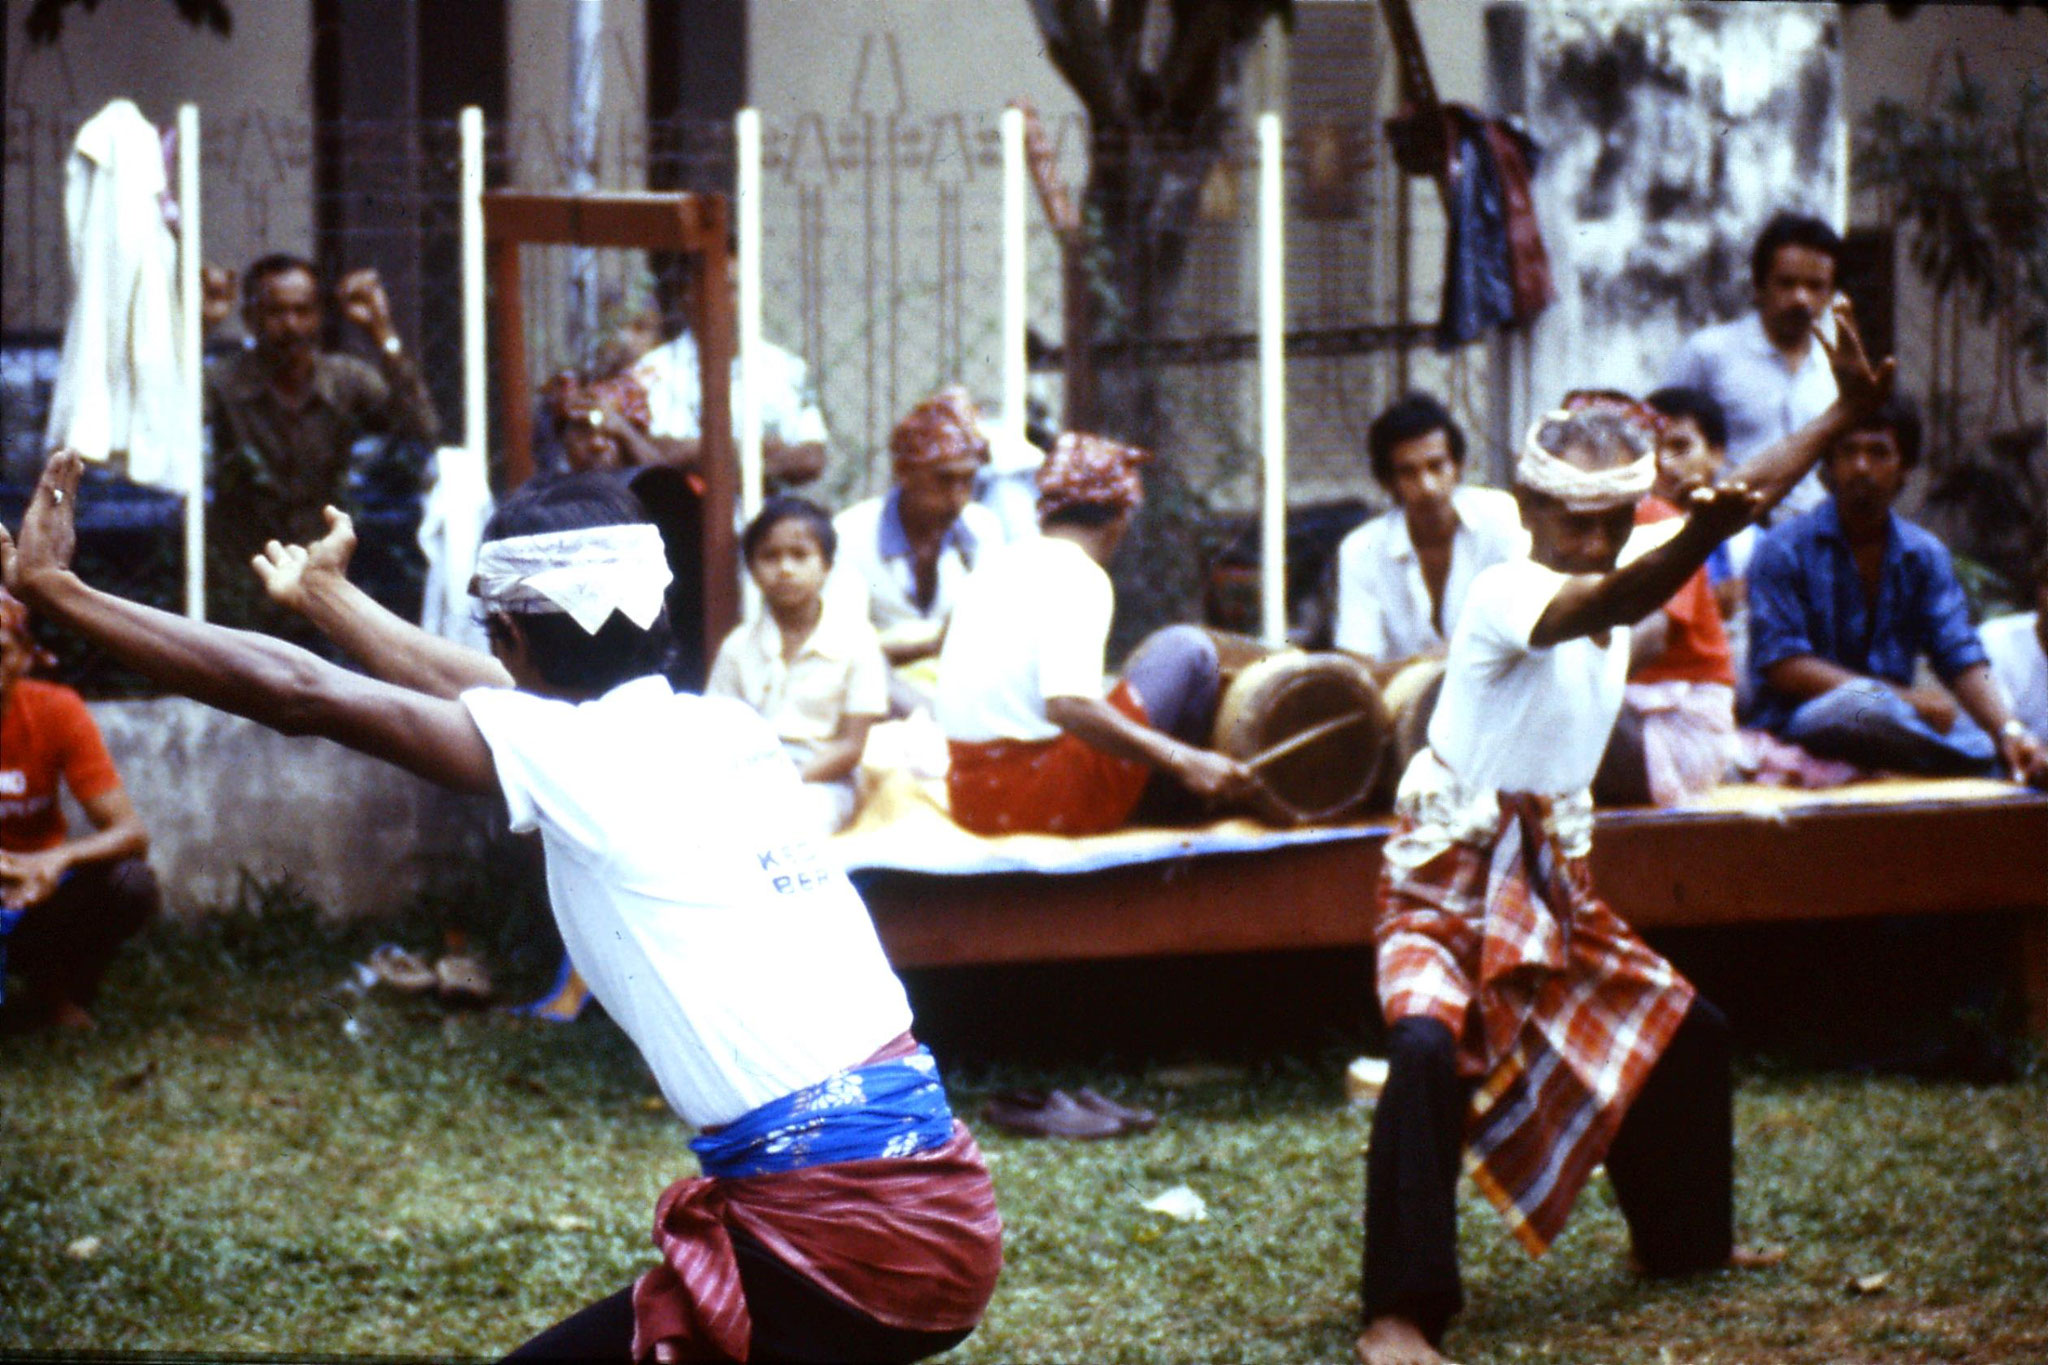 20/6/1990: 27: Kota Bharu cultural show - 'silat' fighting dance